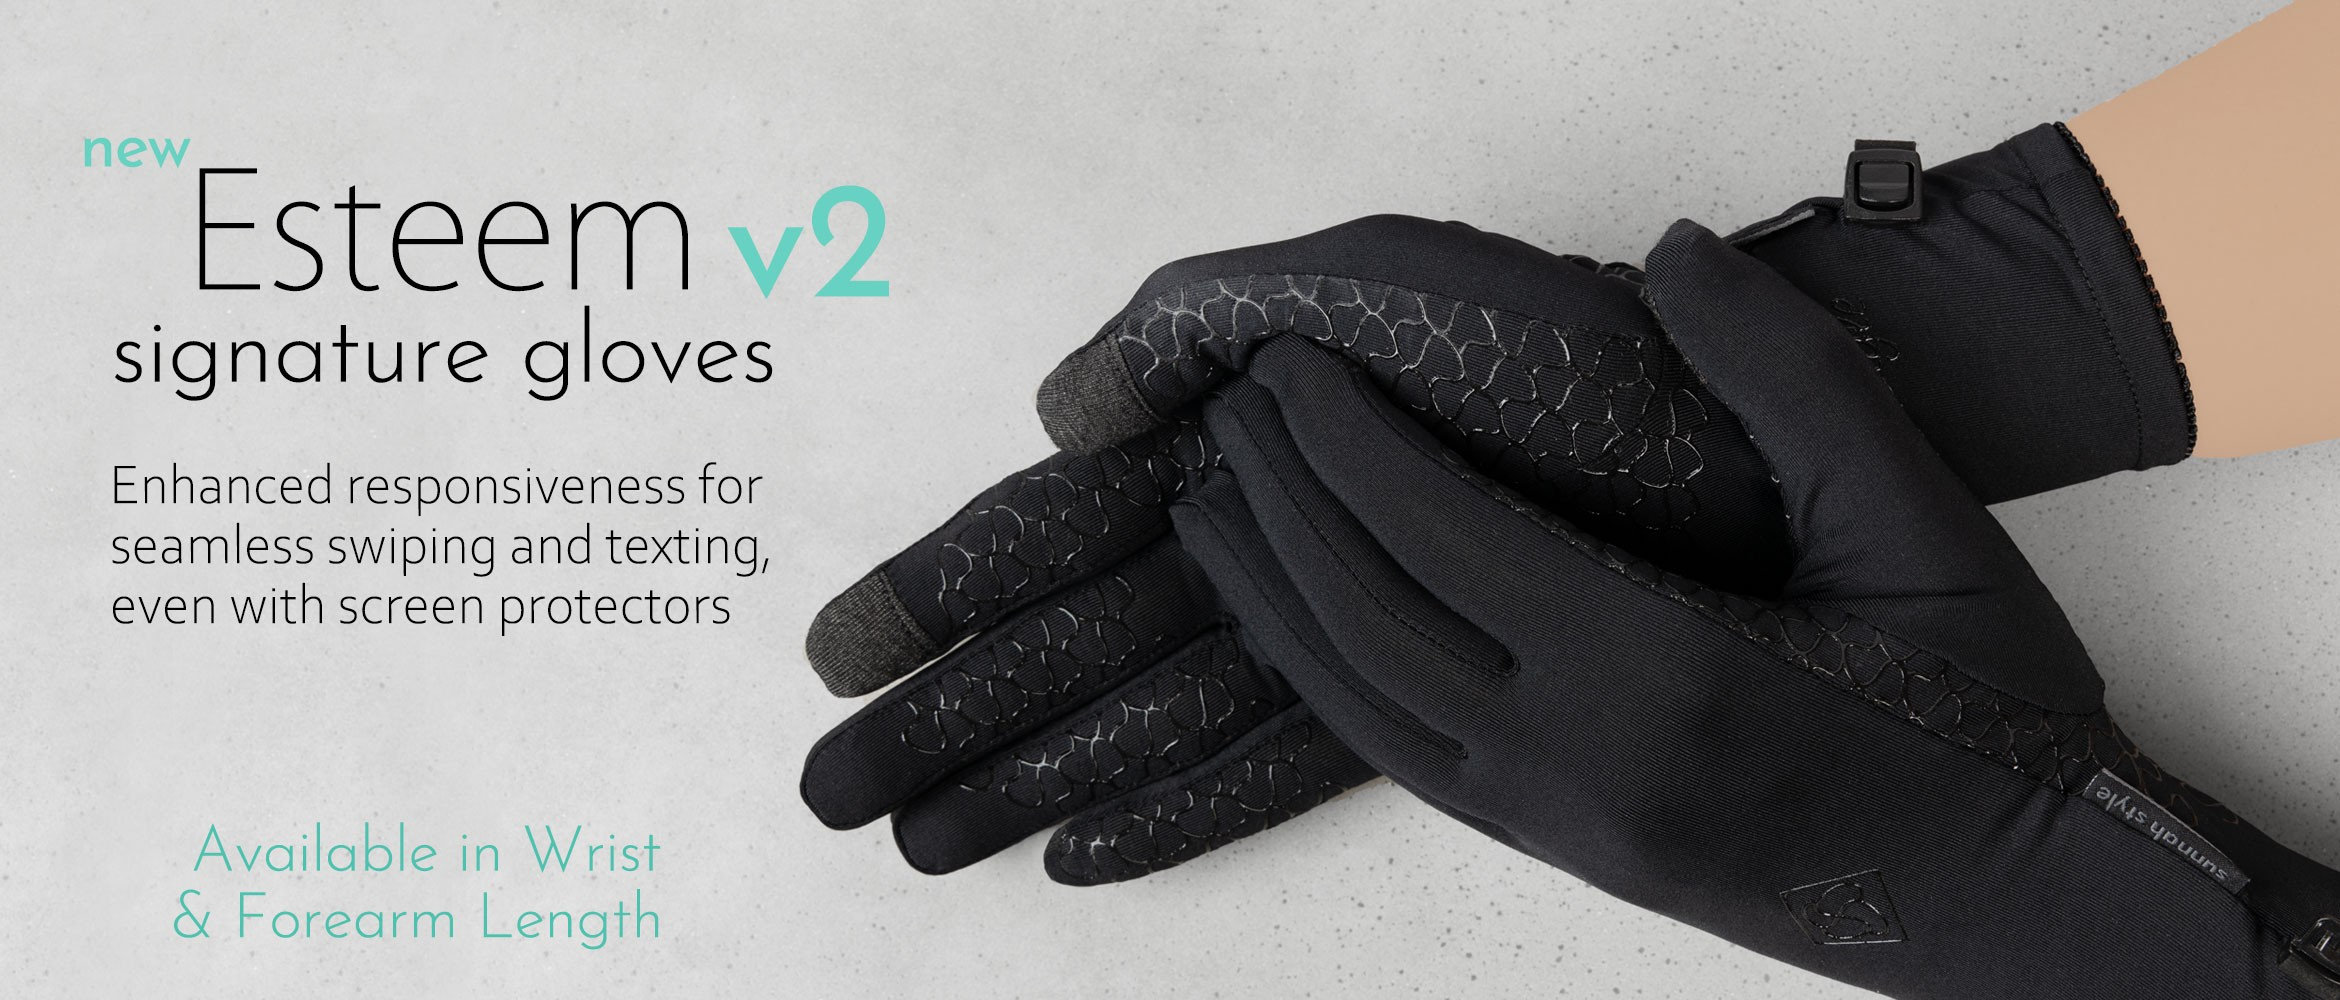 Sunnah Style Esteem Signature Touchscreen Gloves v2